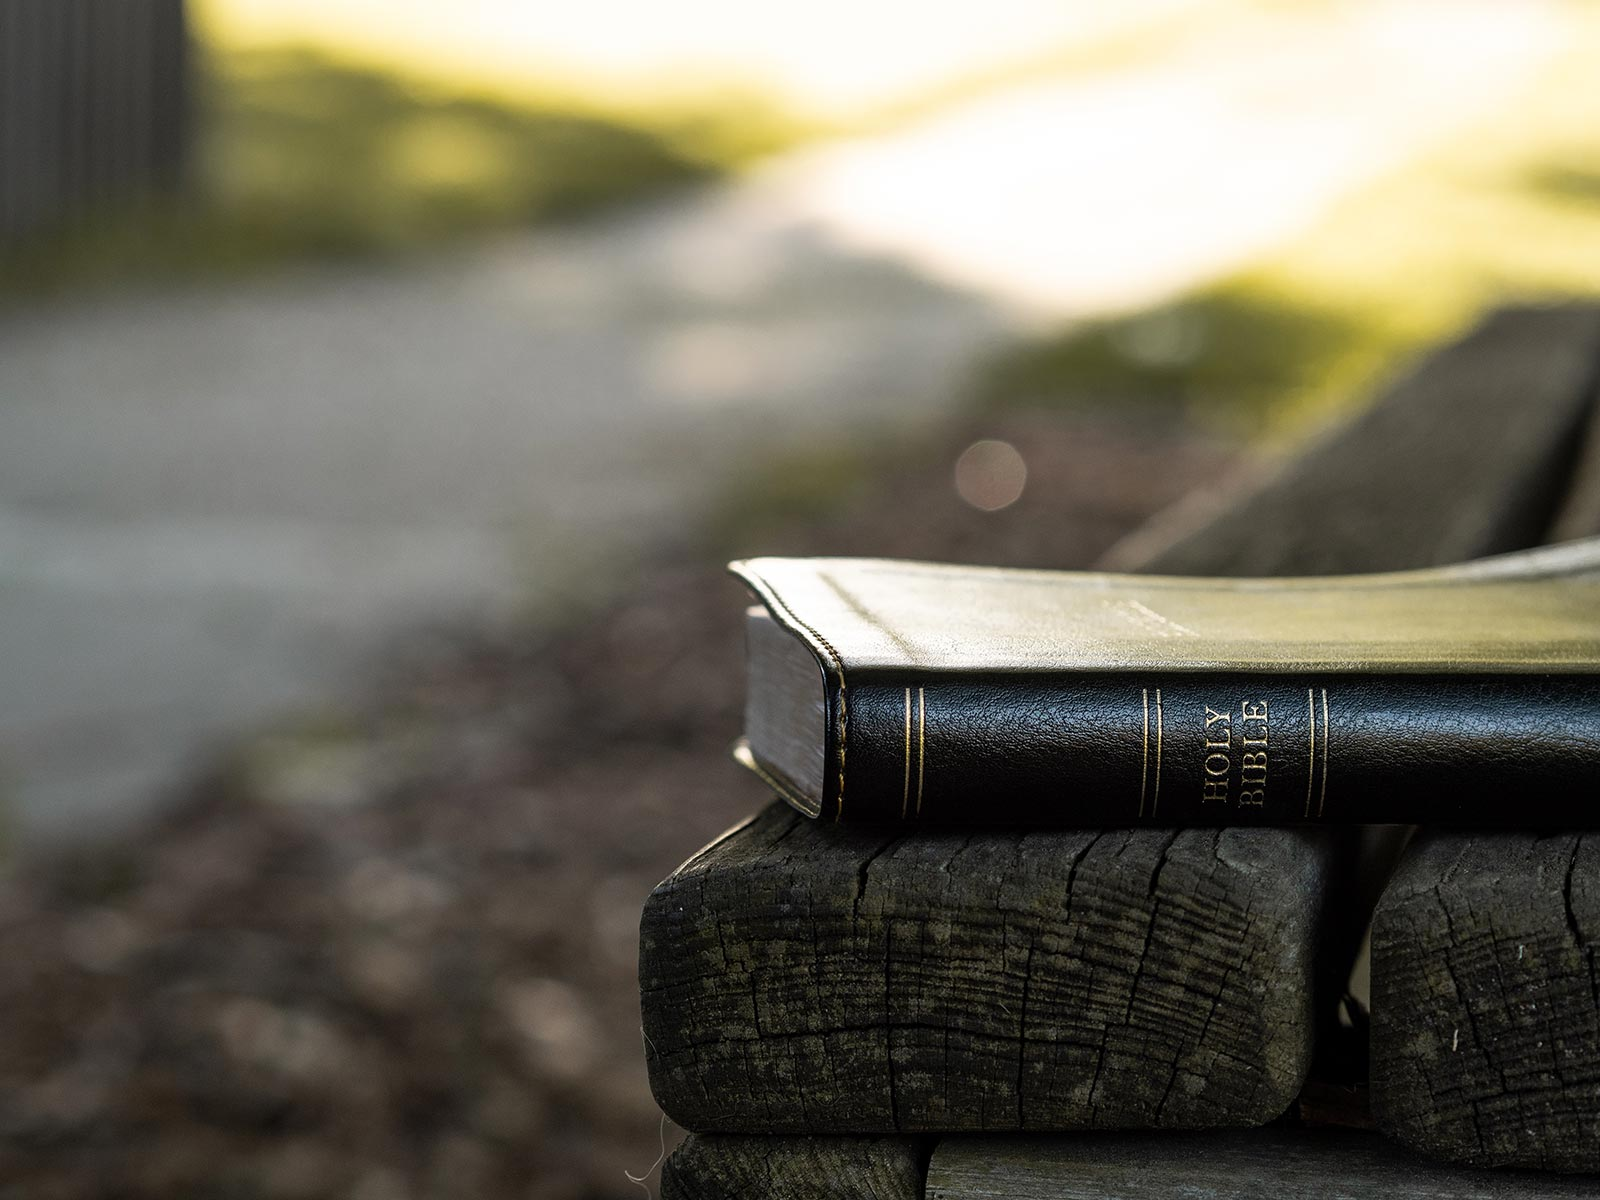 The Bible: How can we trust such an ancient book? Why should anyone think that it's reliable?